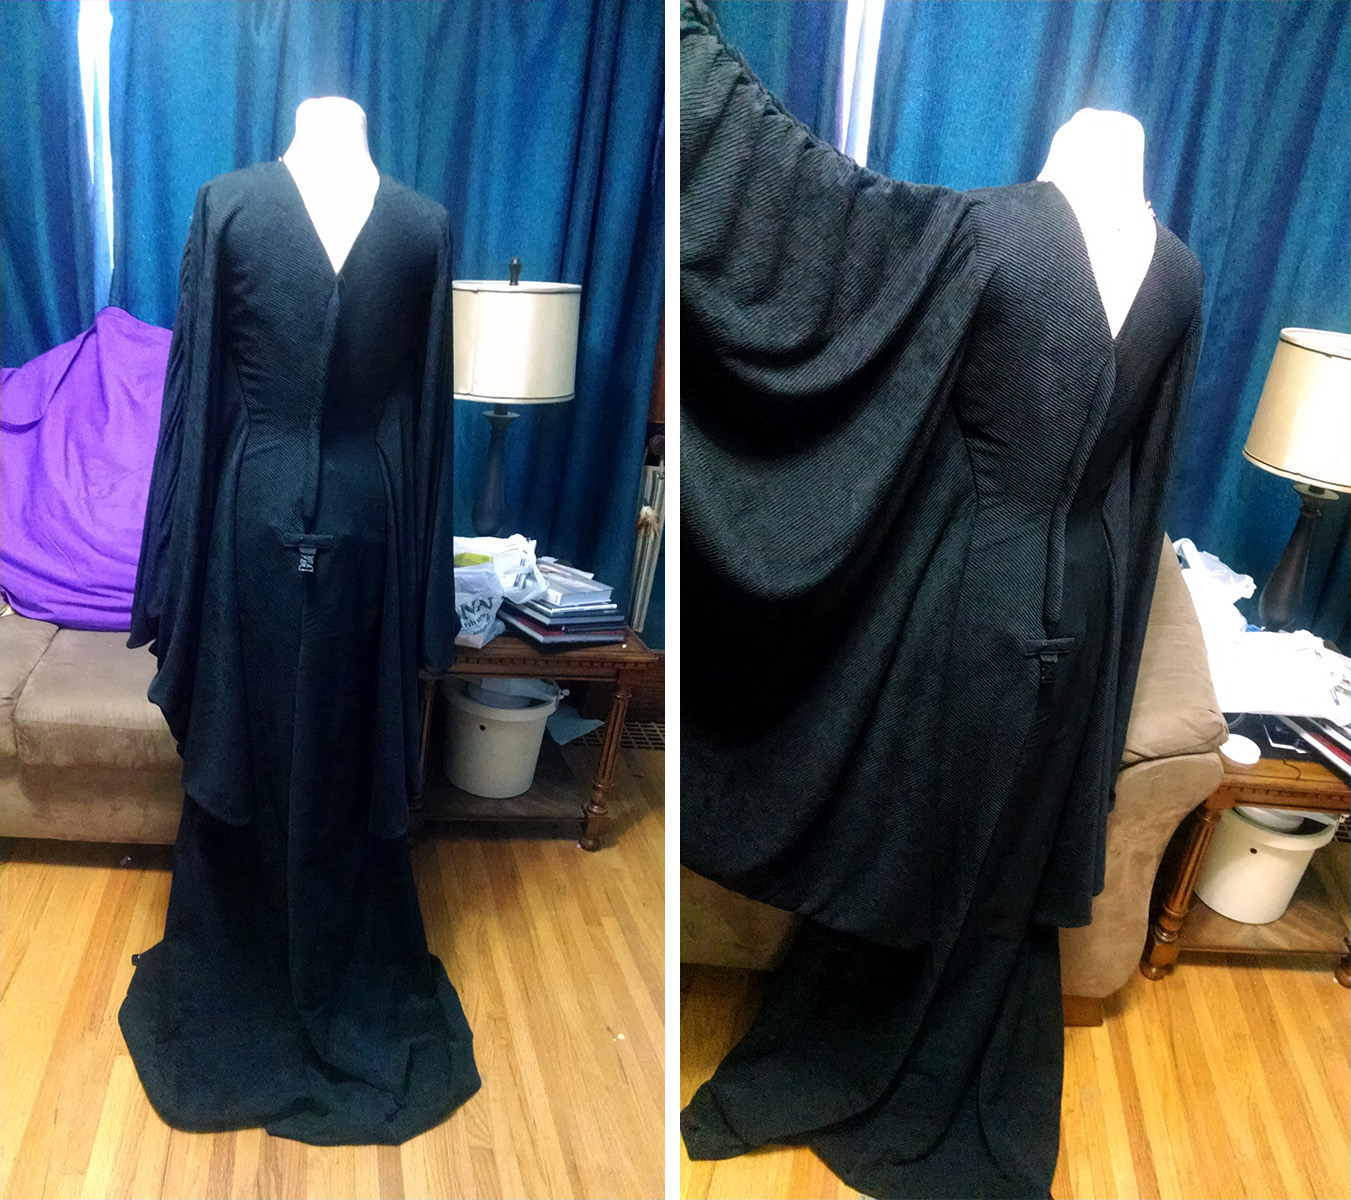 Maleficent's Gown on a dress form.